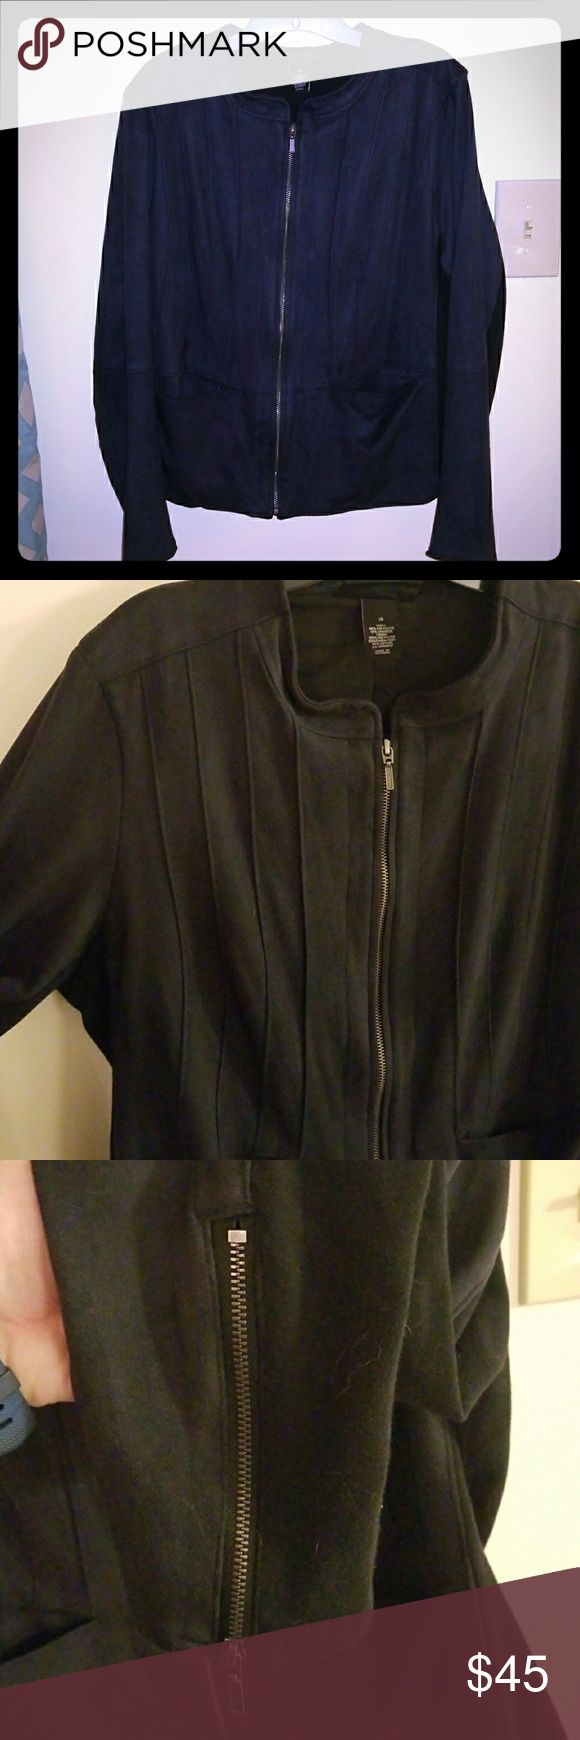 Navy & Black Jacket Gorgeous Lane Bryant jacket in a soft navy sueded fabric with great piping detail on front and back. Back knit on sides and down the arms adds a flattering, slimming effect. Lightweight and awesome for layering. Worn only twice. Size 18 Lane Bryant Jackets & Coats Blazers